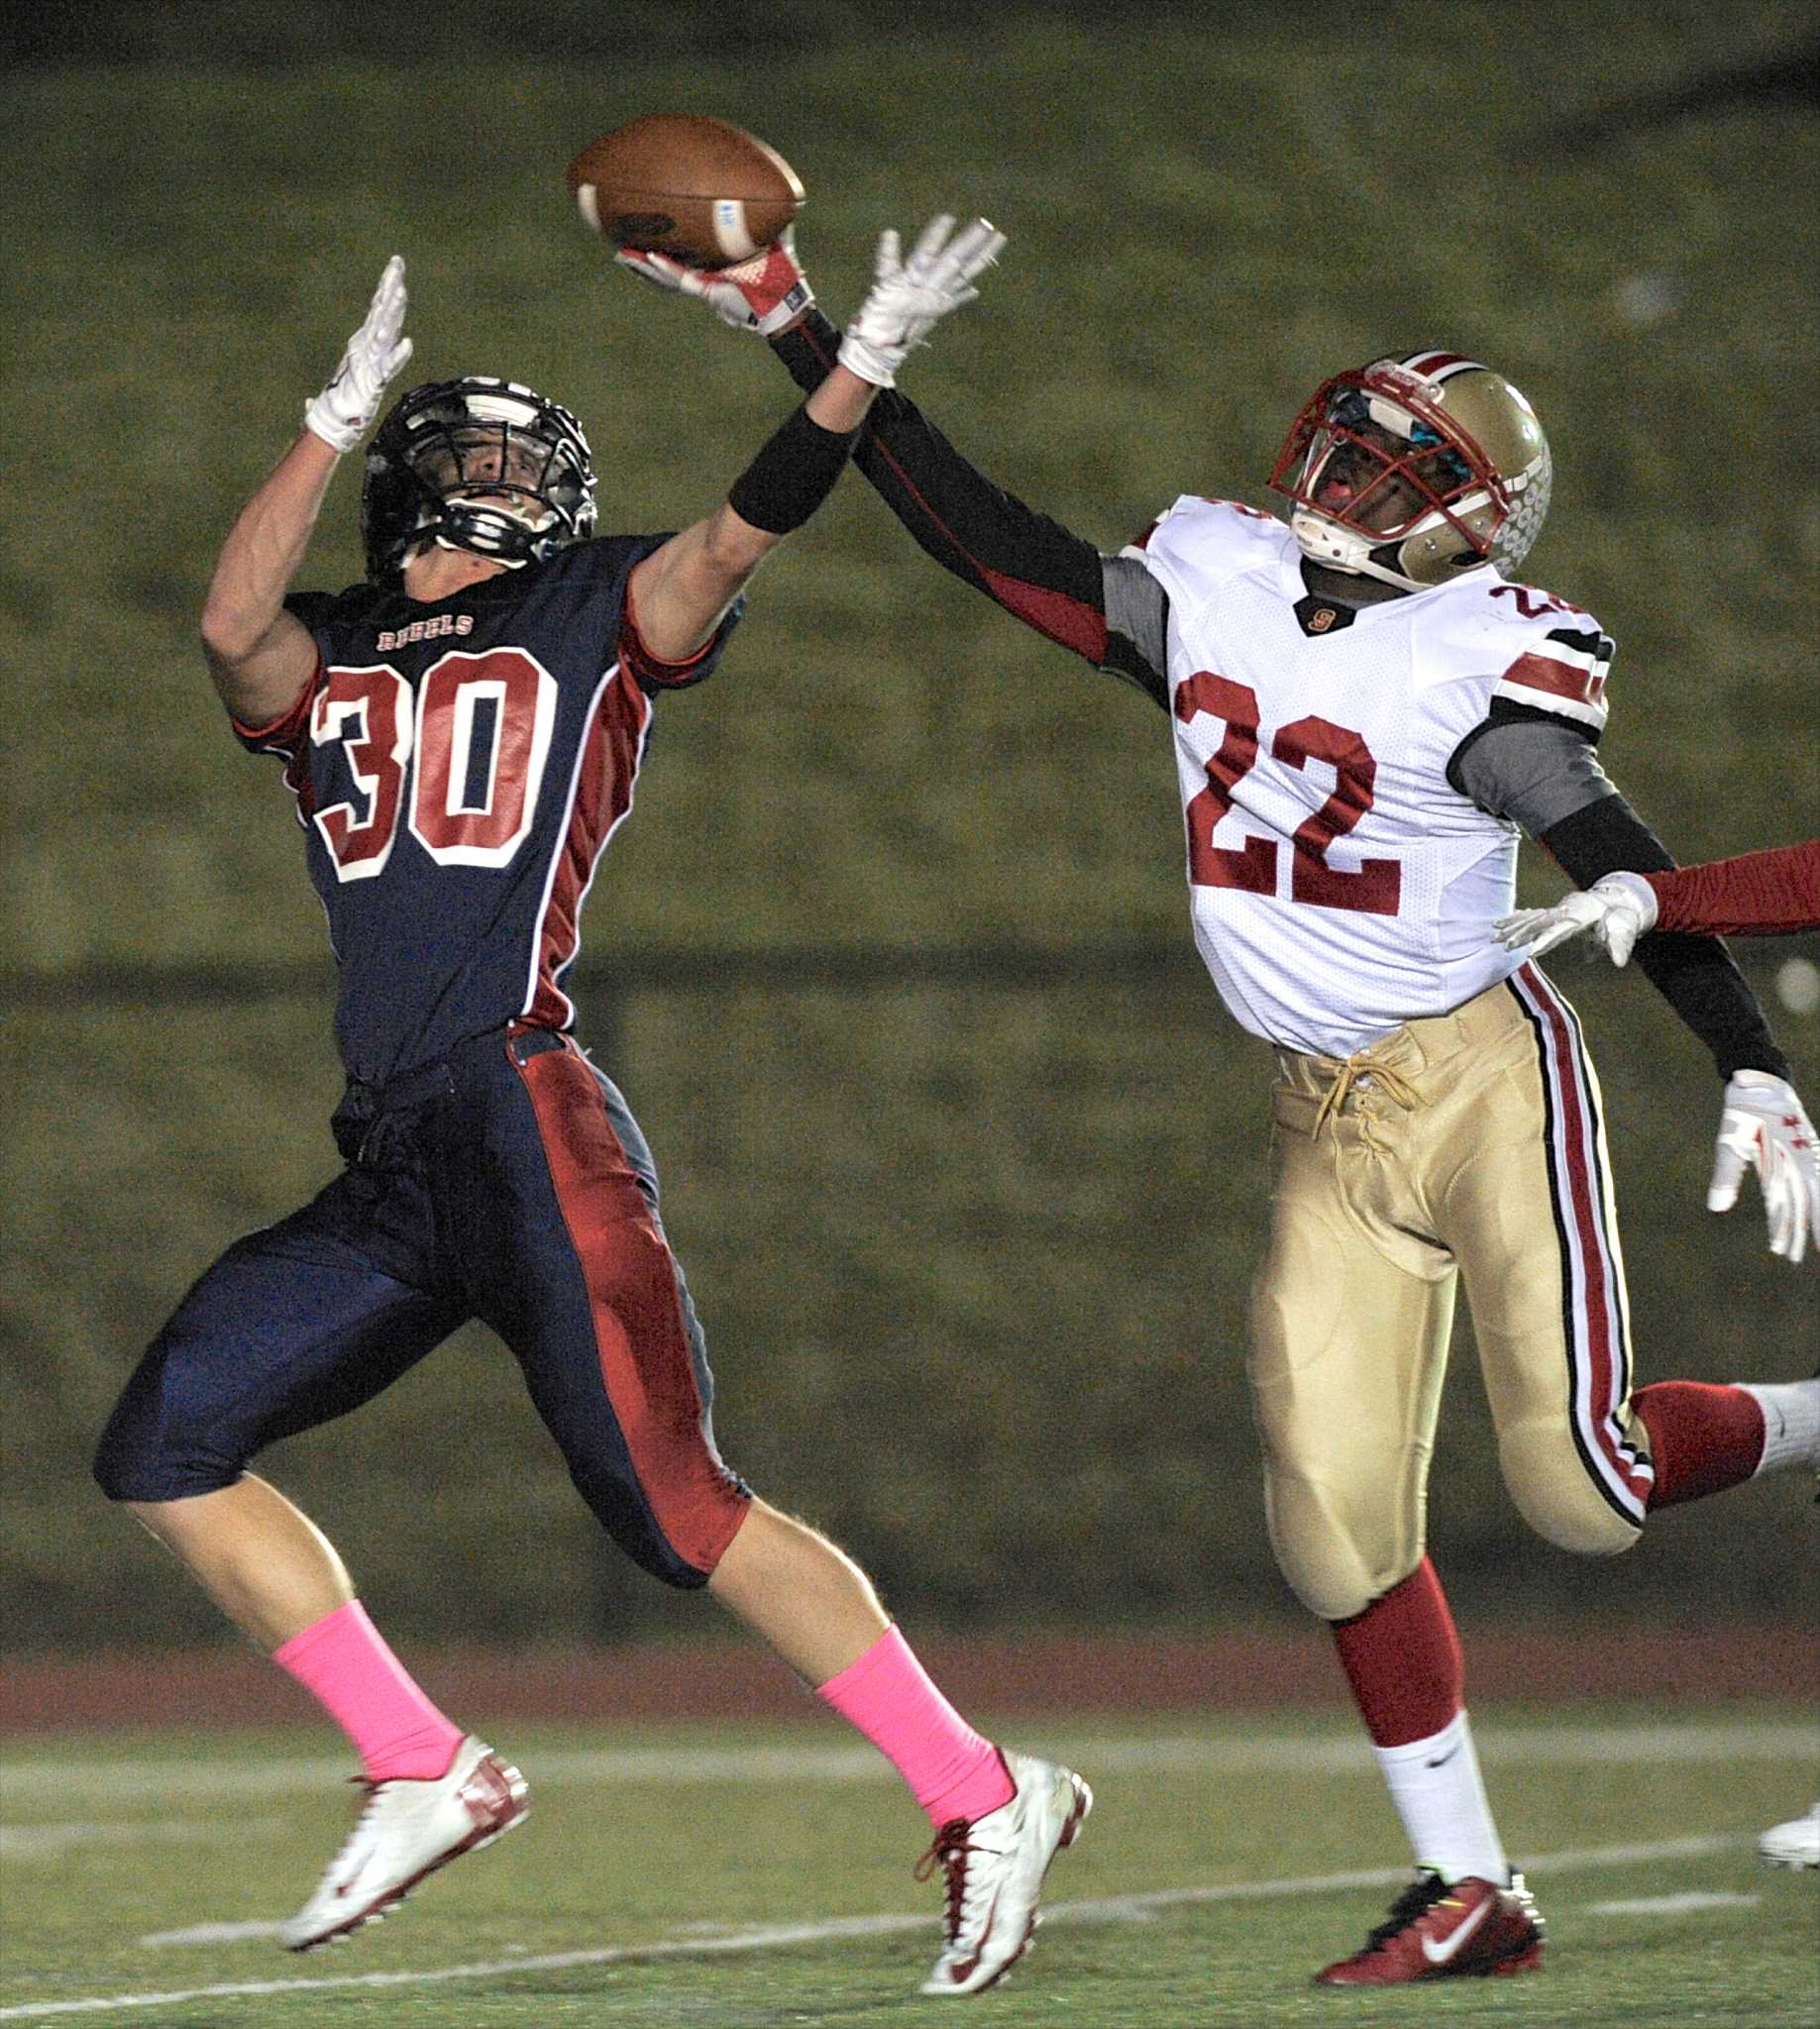 New Fairfield ends Stratford's 5-game winning streak ...